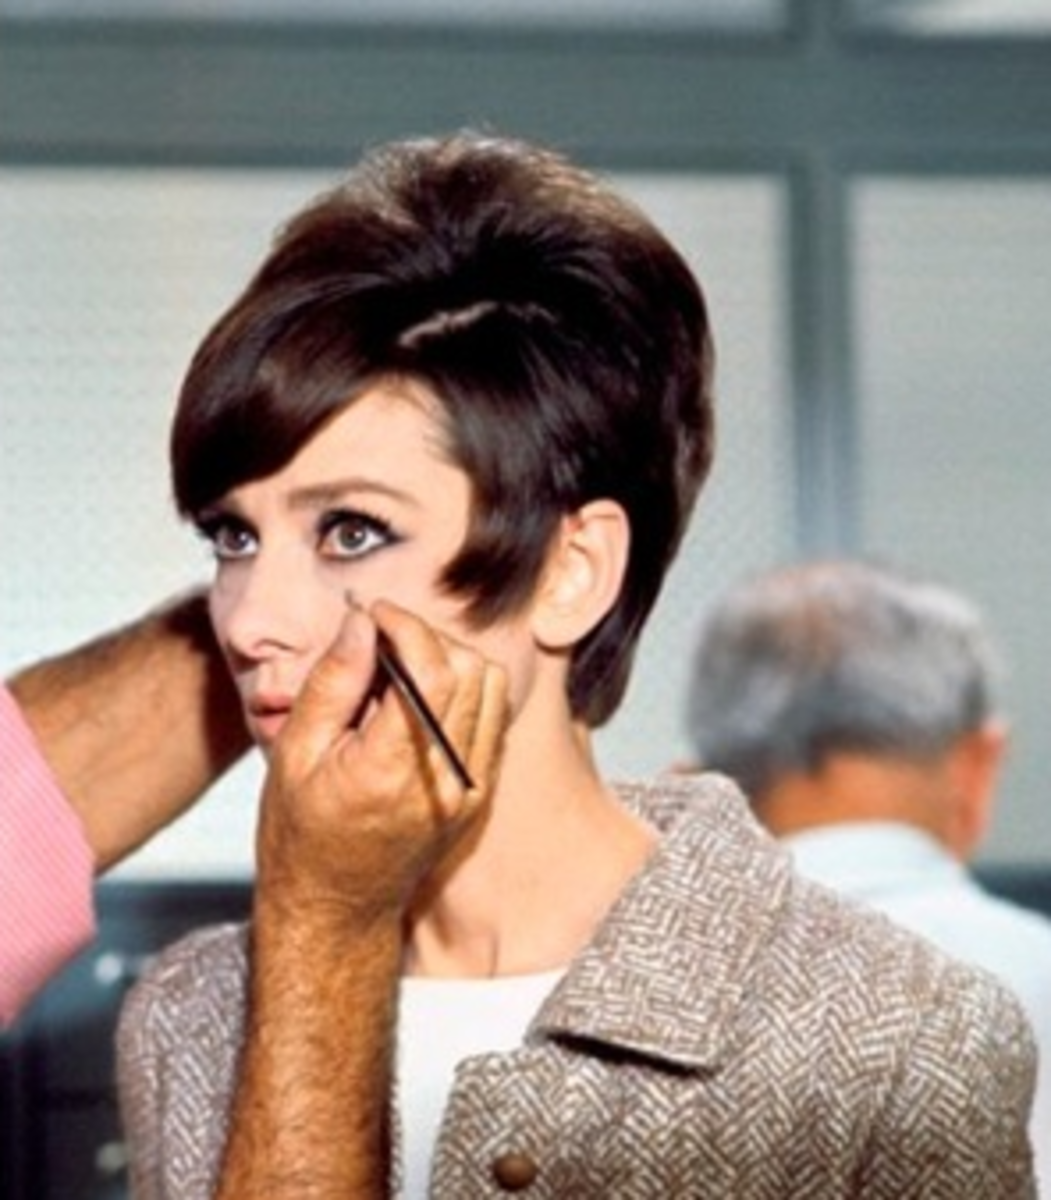 Audrey gets her makeup done in the 60's.